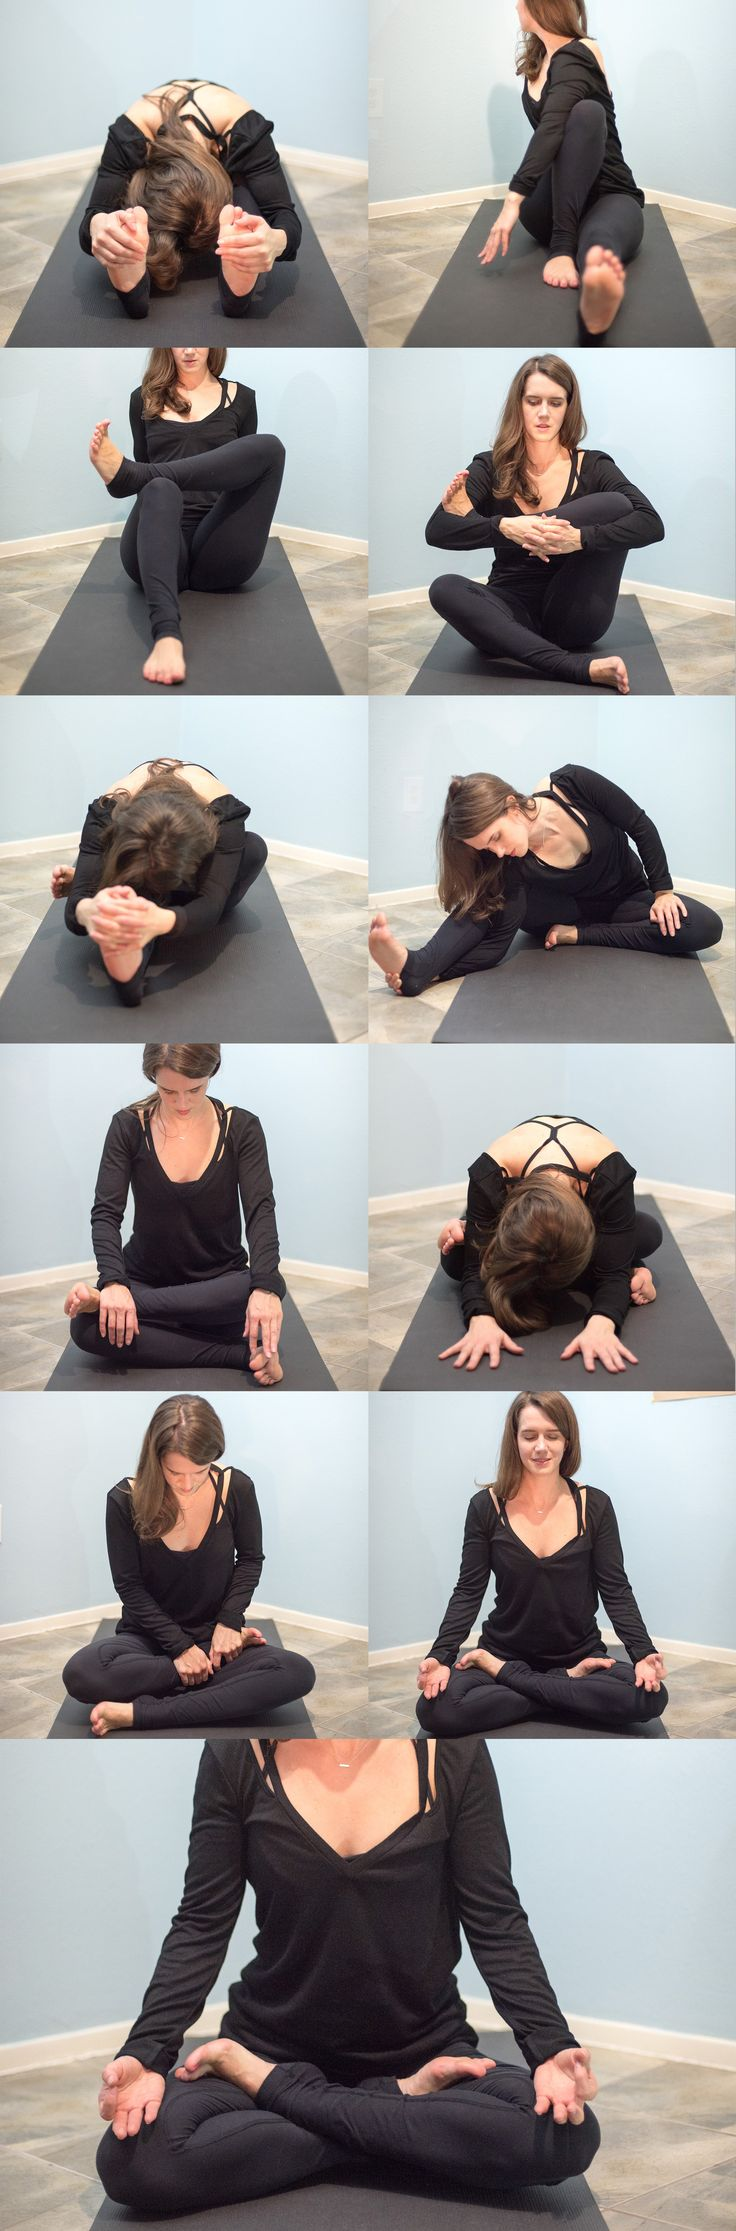 Yoga: How to get into lotus pose #yoga #loveandalliscoming #yogaeverydamnday